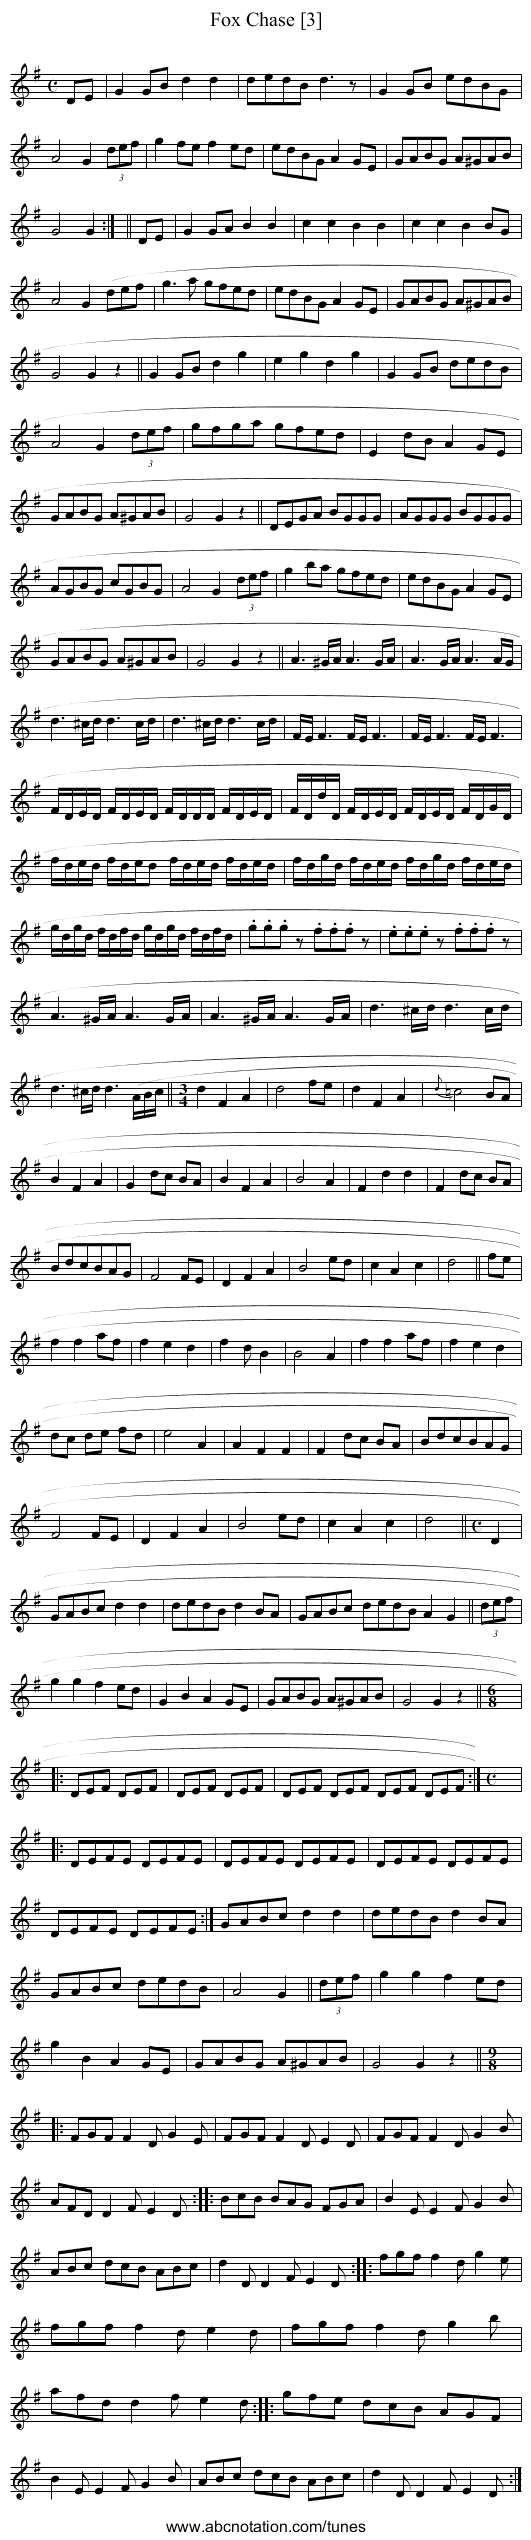 Fox Chase [3] - staff notation